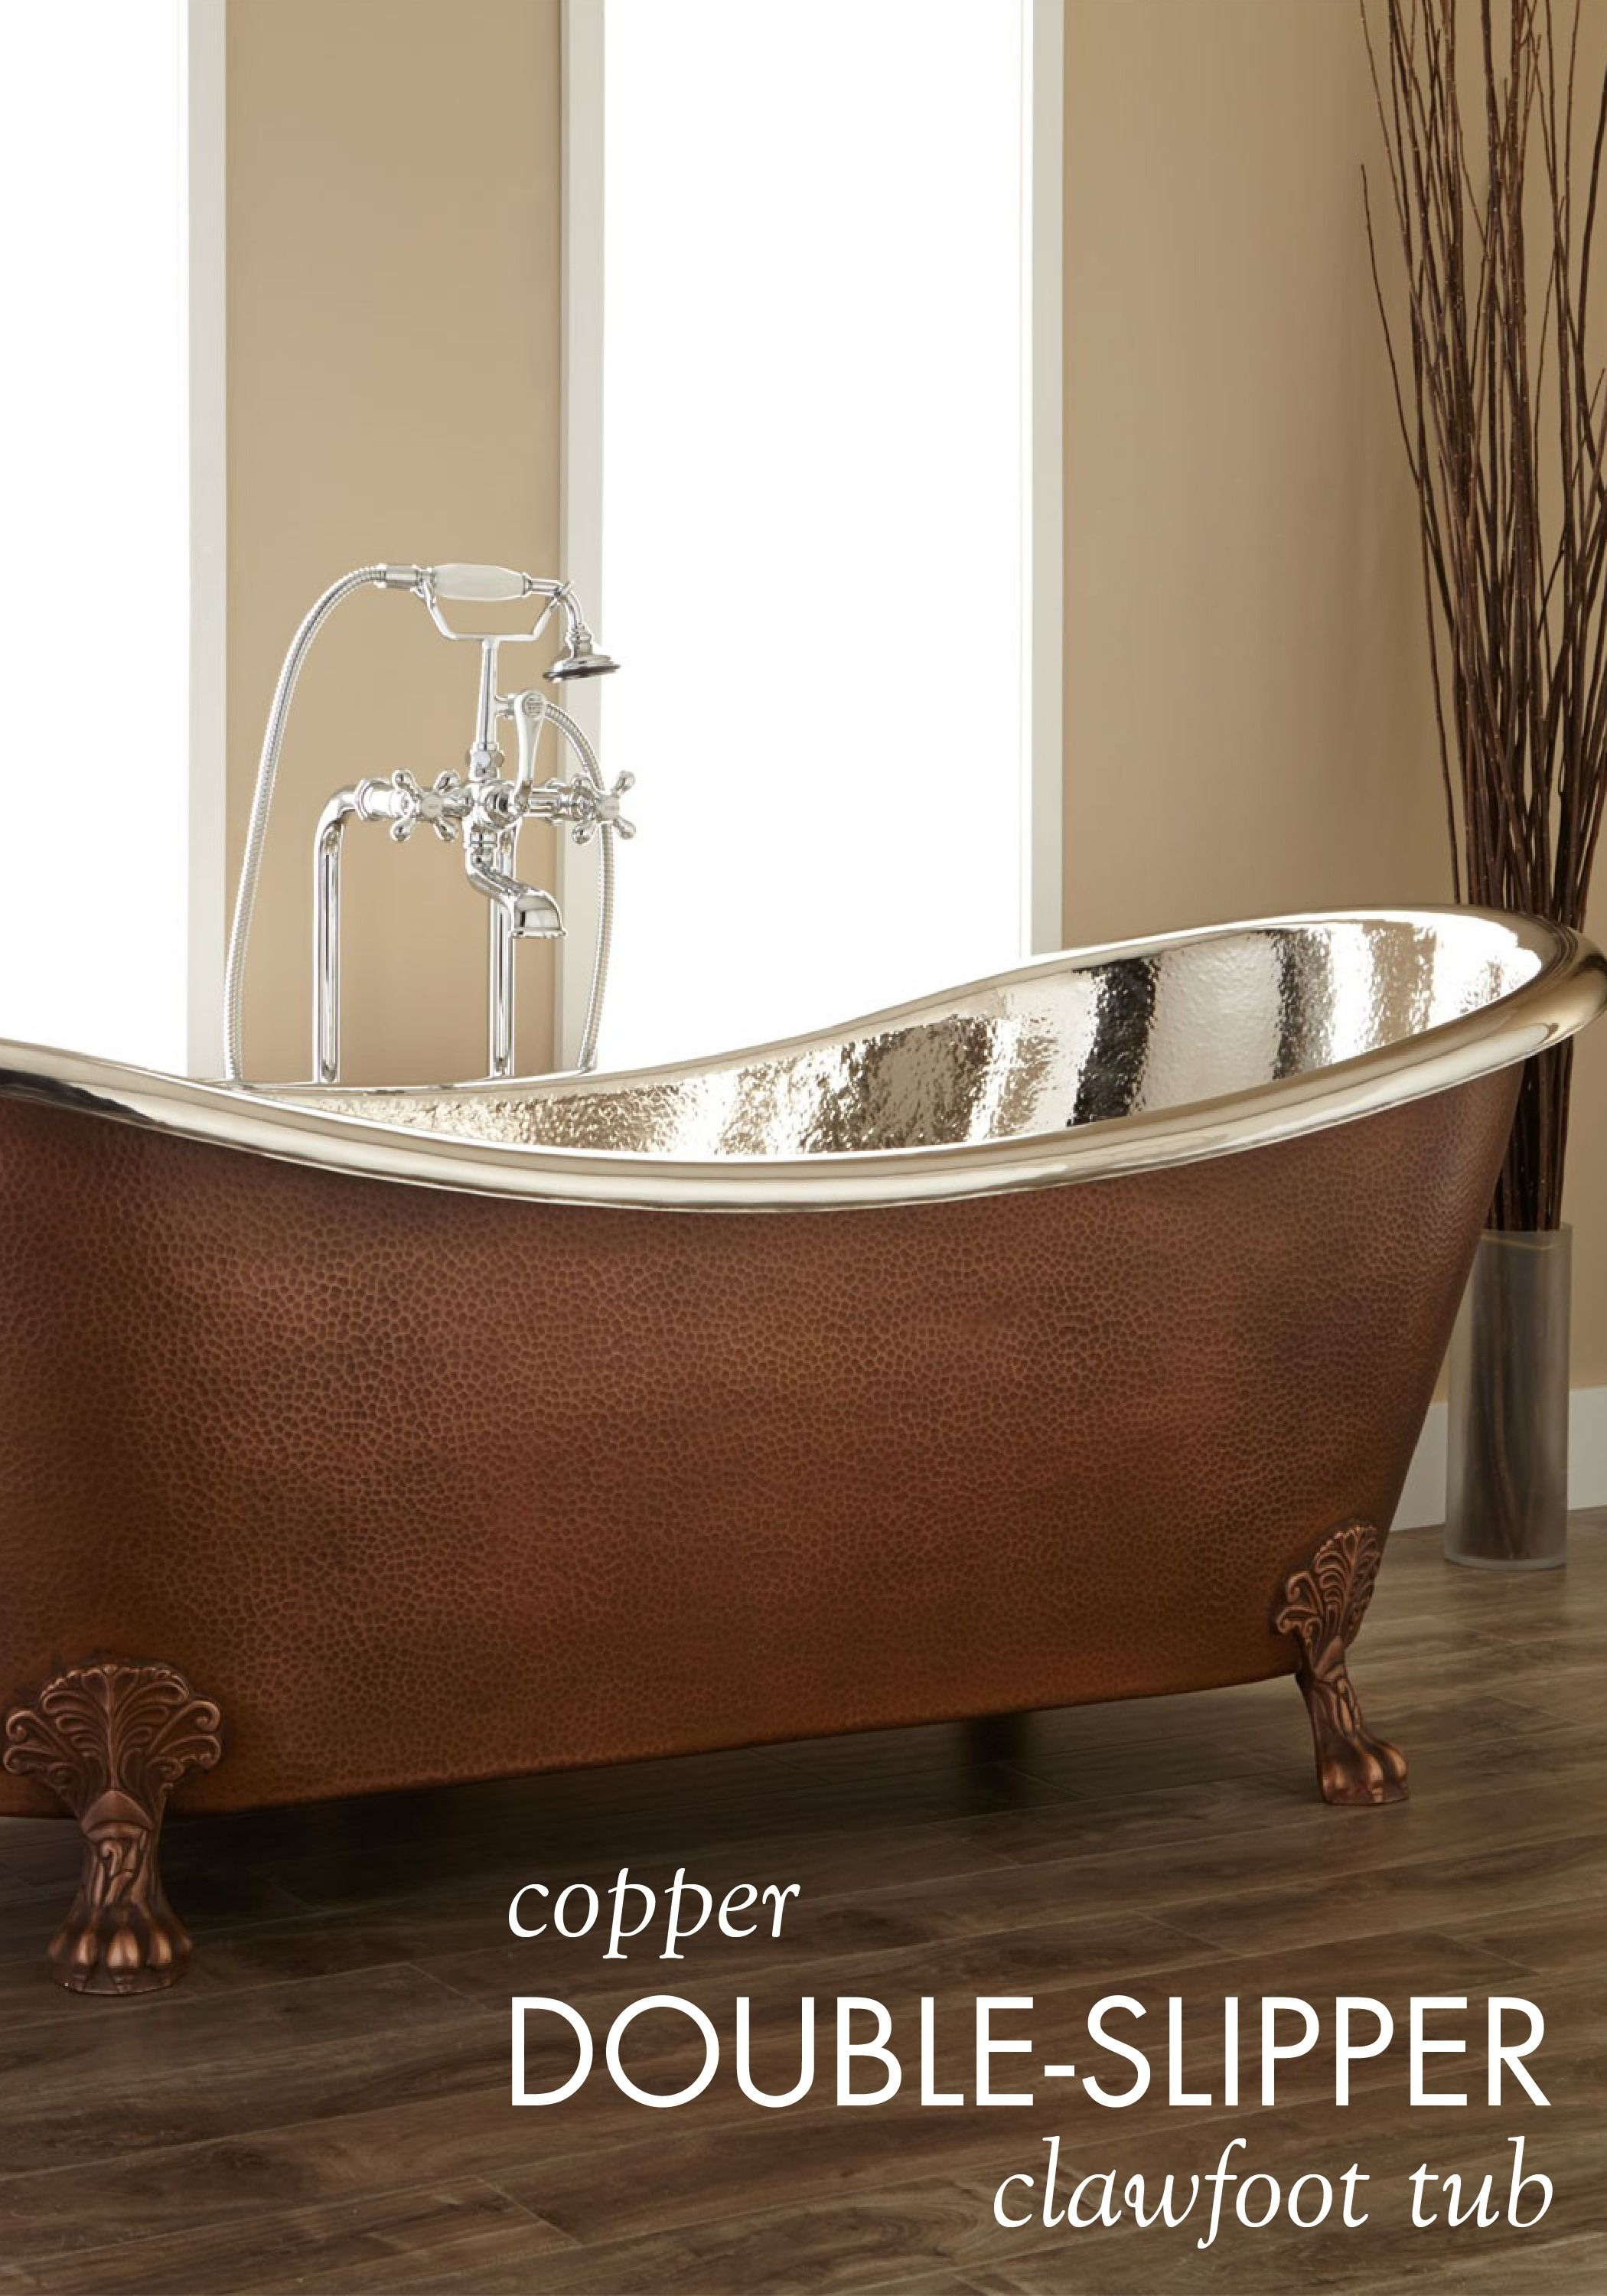 Let The Hammered Copper Double Slipper Clawfoot Tub Be The Focal